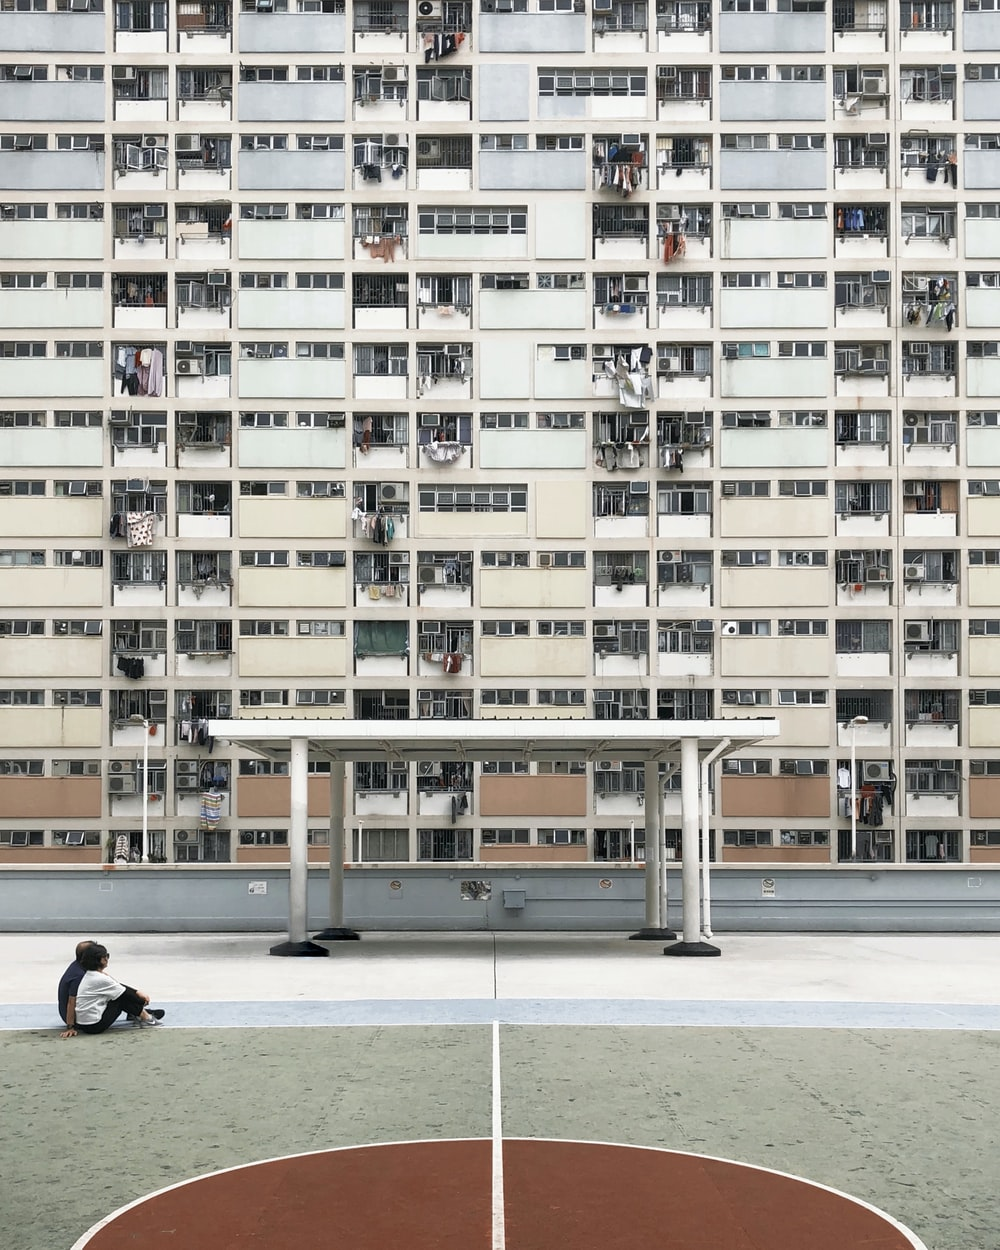 two people sitting on concrete pavement in front of high-rise building